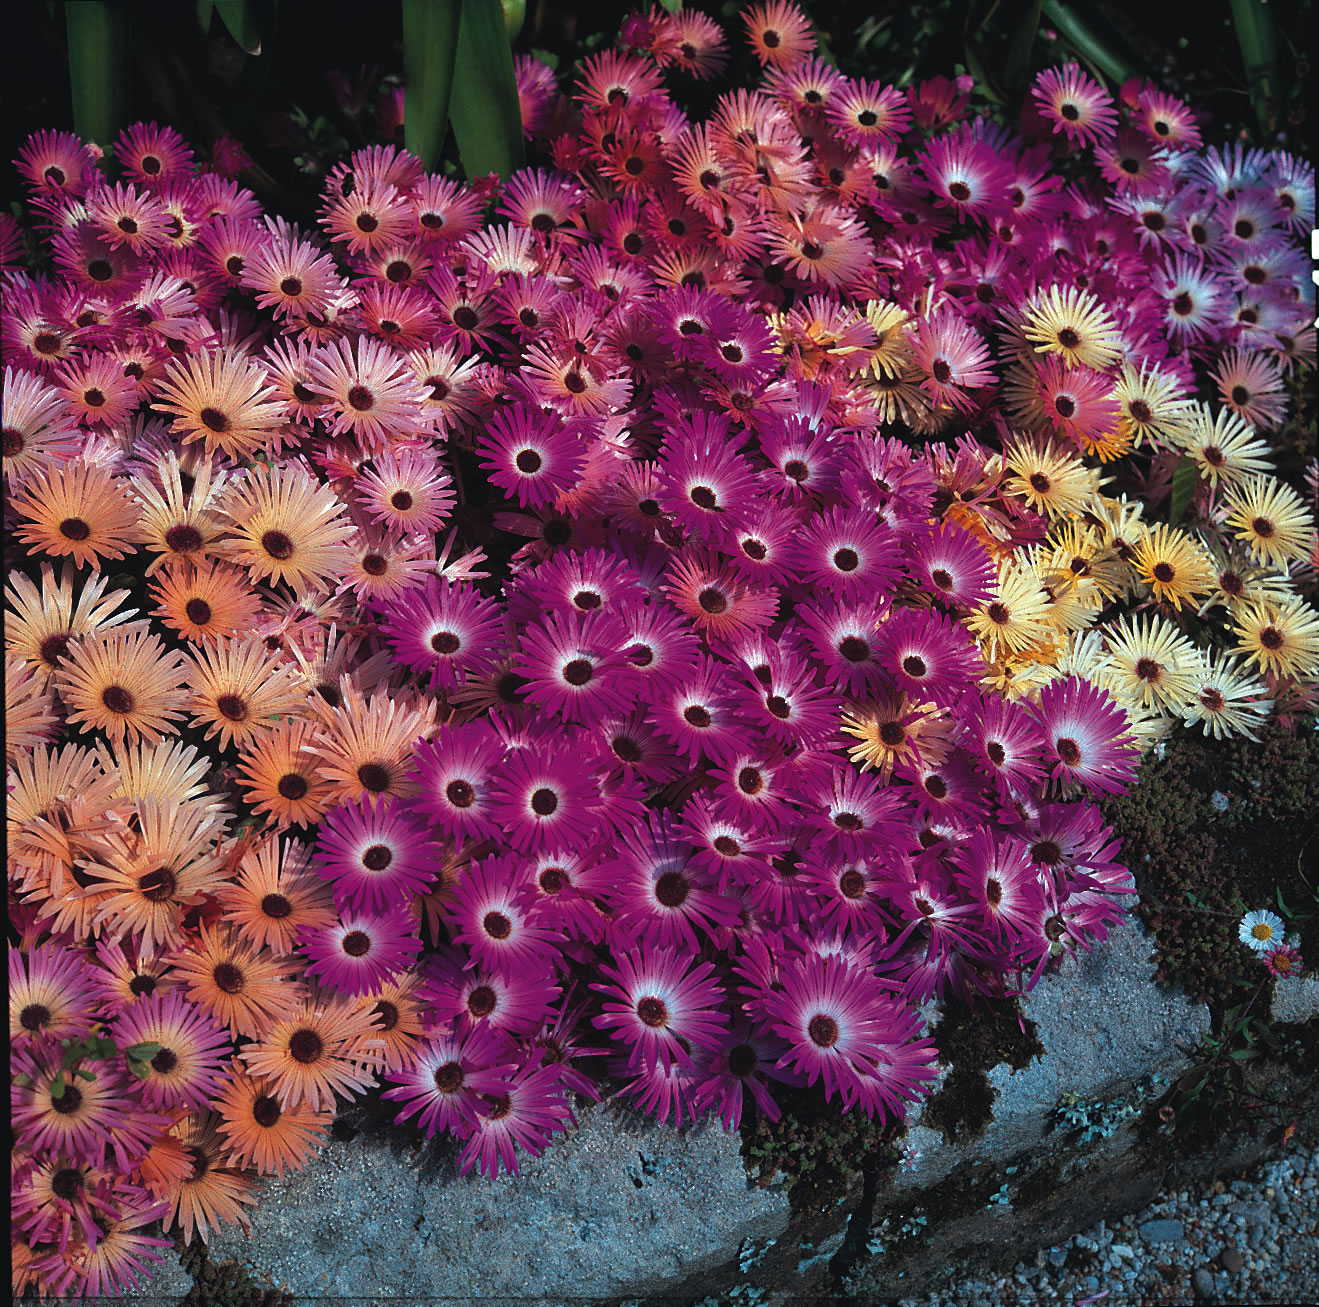 Magic carpet mesembryanthemum seeds kings seeds magic carpet low spreading habit producing masses of brightly coloured daisy like flowers izmirmasajfo